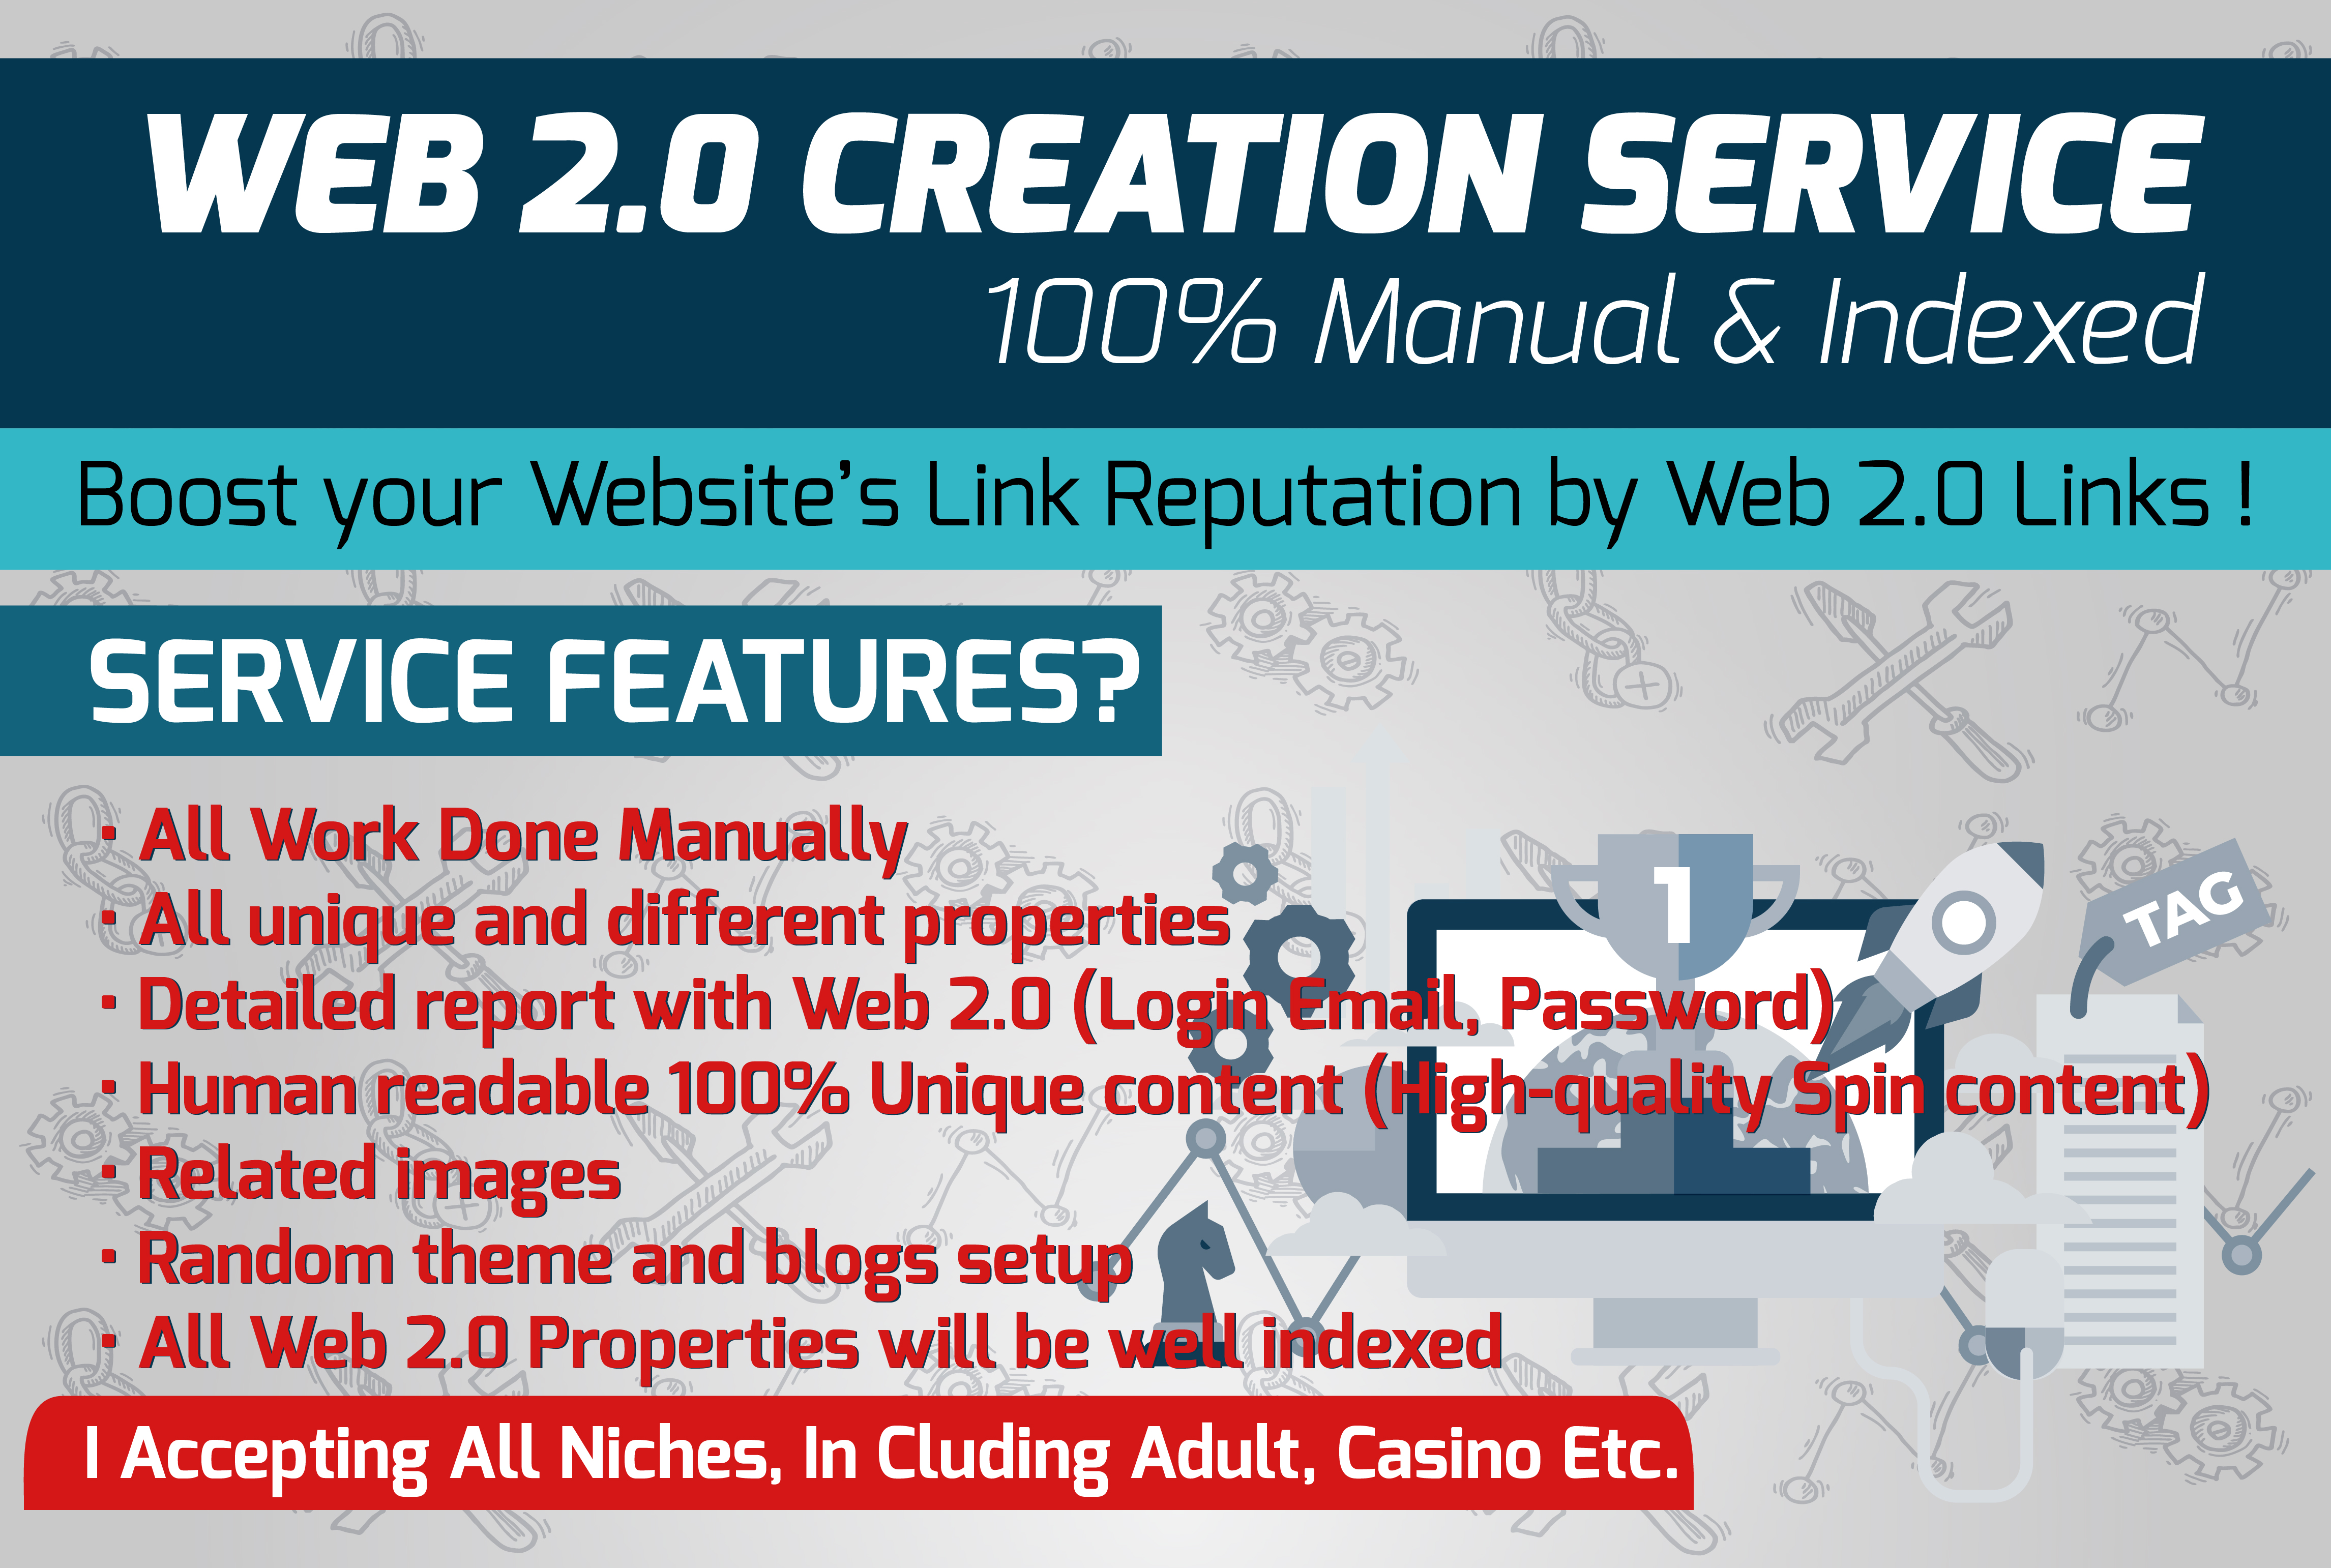 Web 2.0 Creation Service - 100 Manual & Indexed 1...